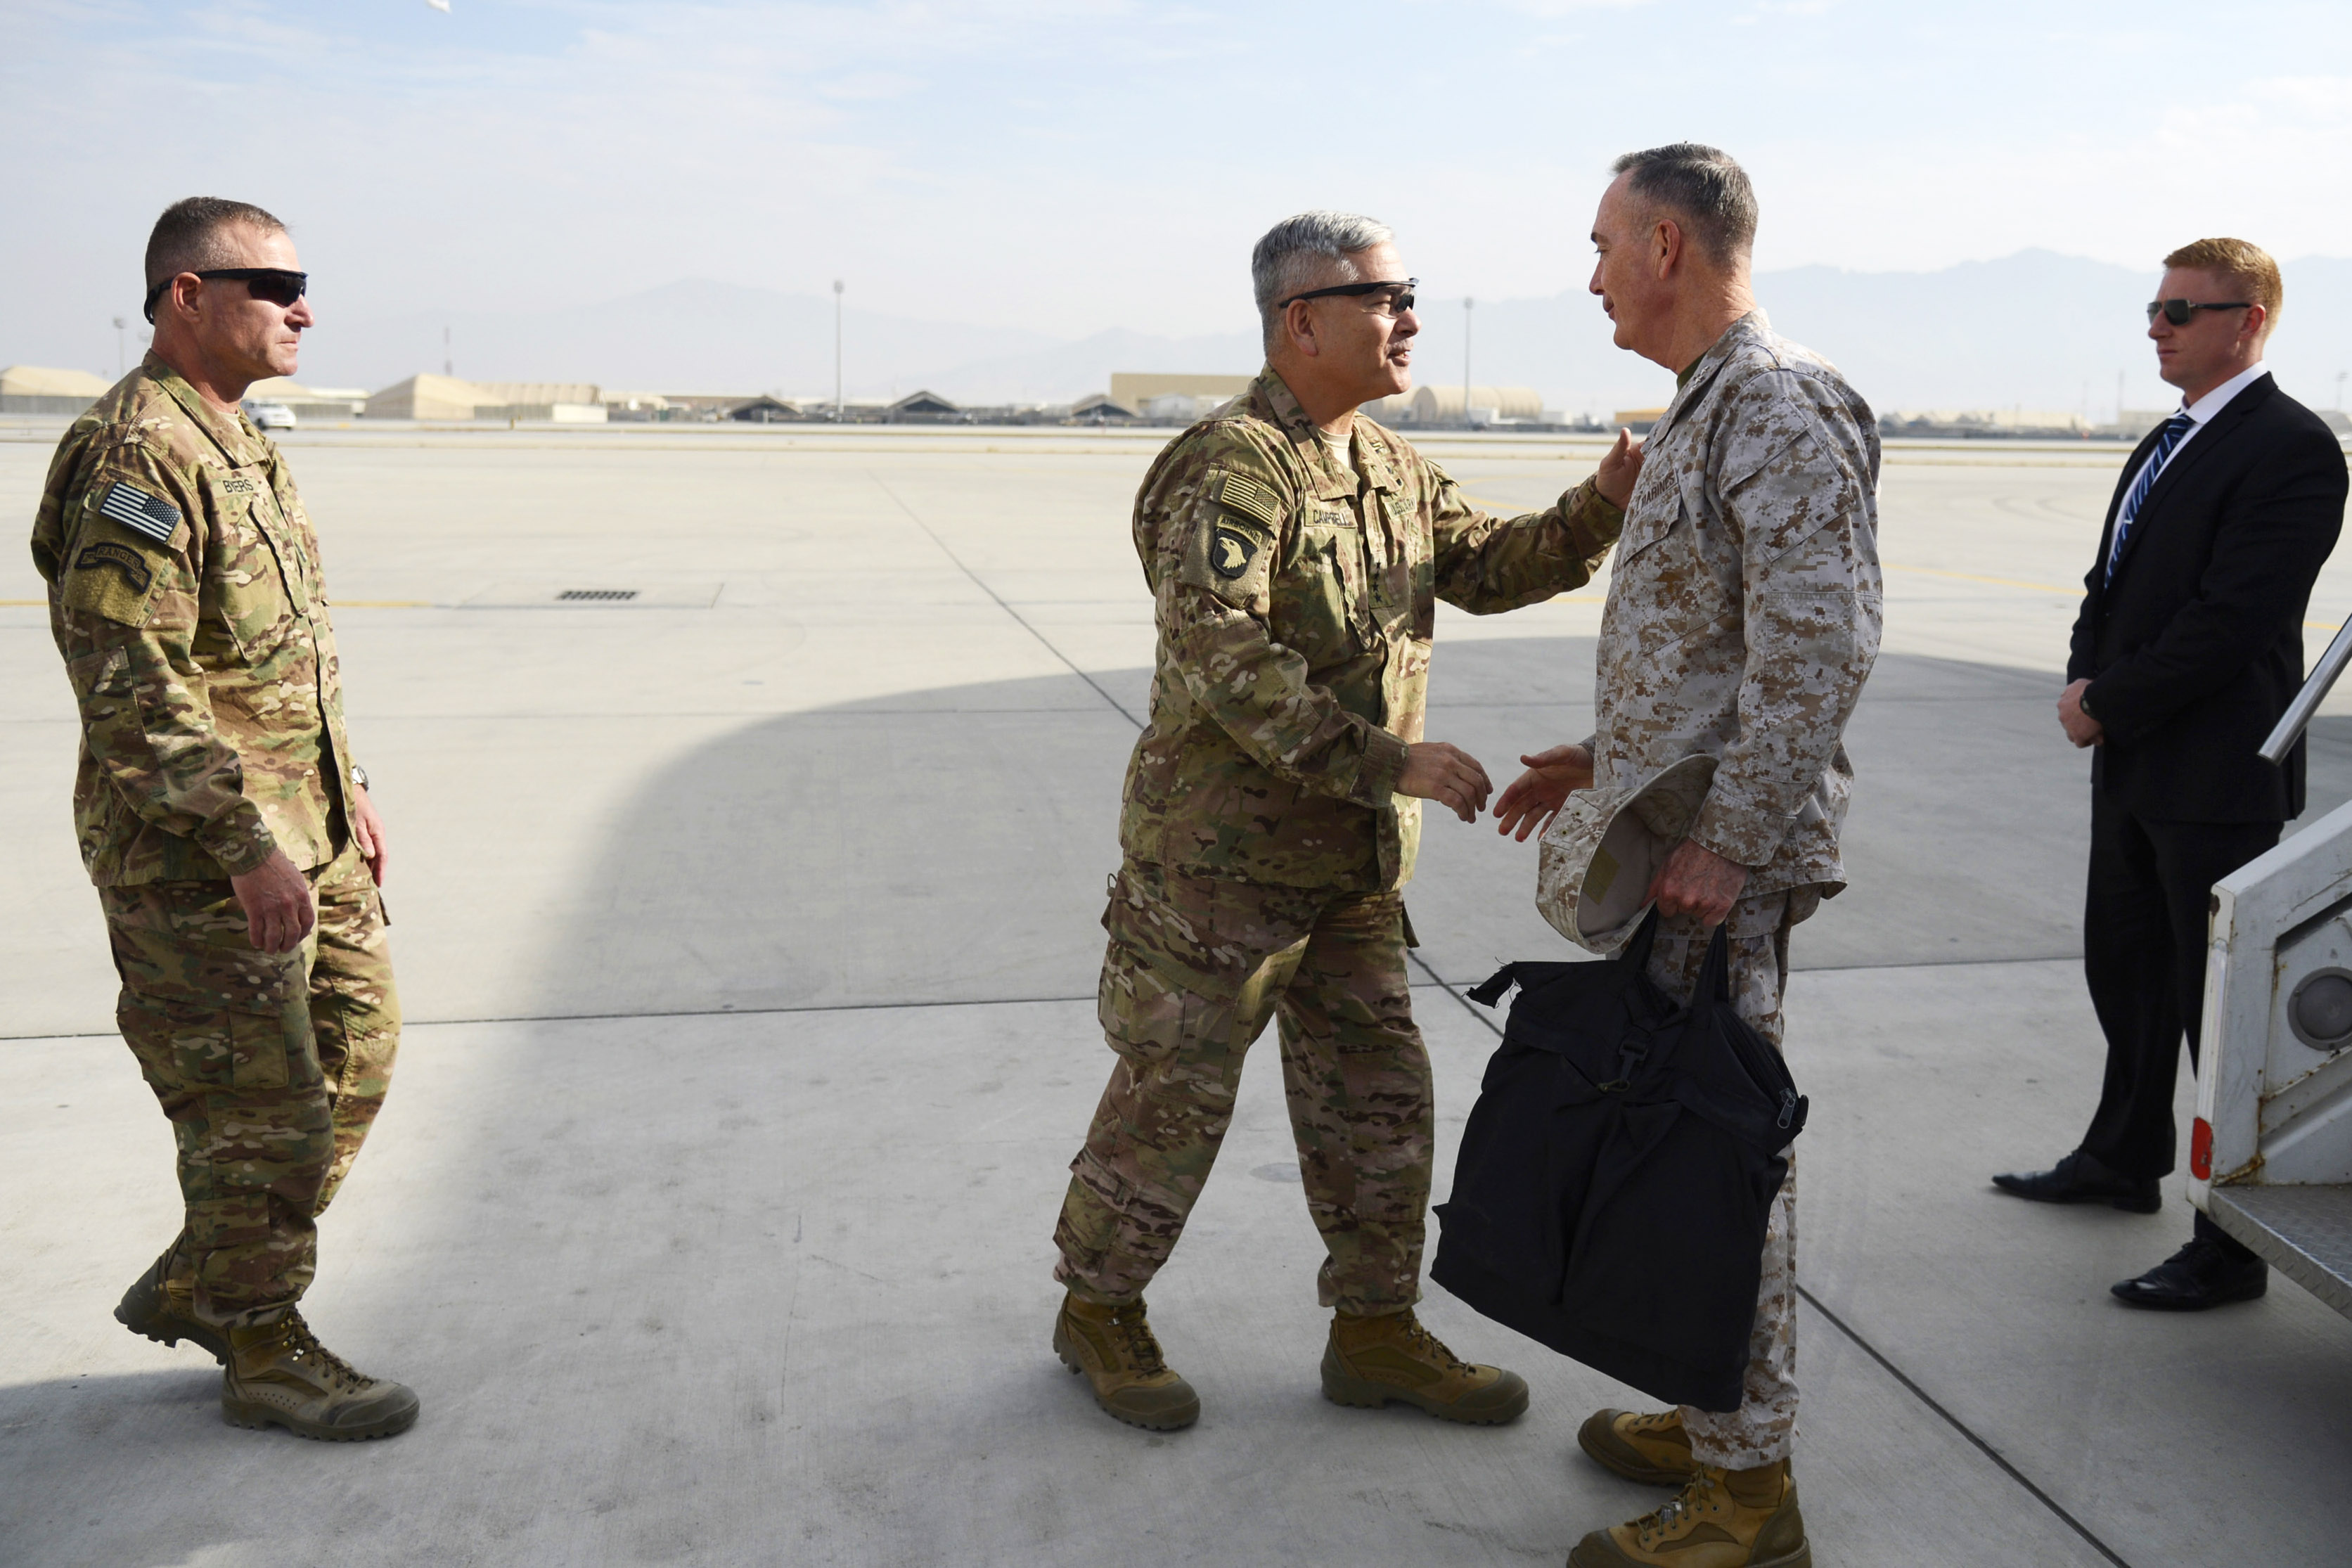 U.S. Army Gen. John Campbell shaking hands with U.S. Marine Corps Gen. Joseph F. Dunford Jr., chairman of the Joint Chiefs of Staff, on the tarmac